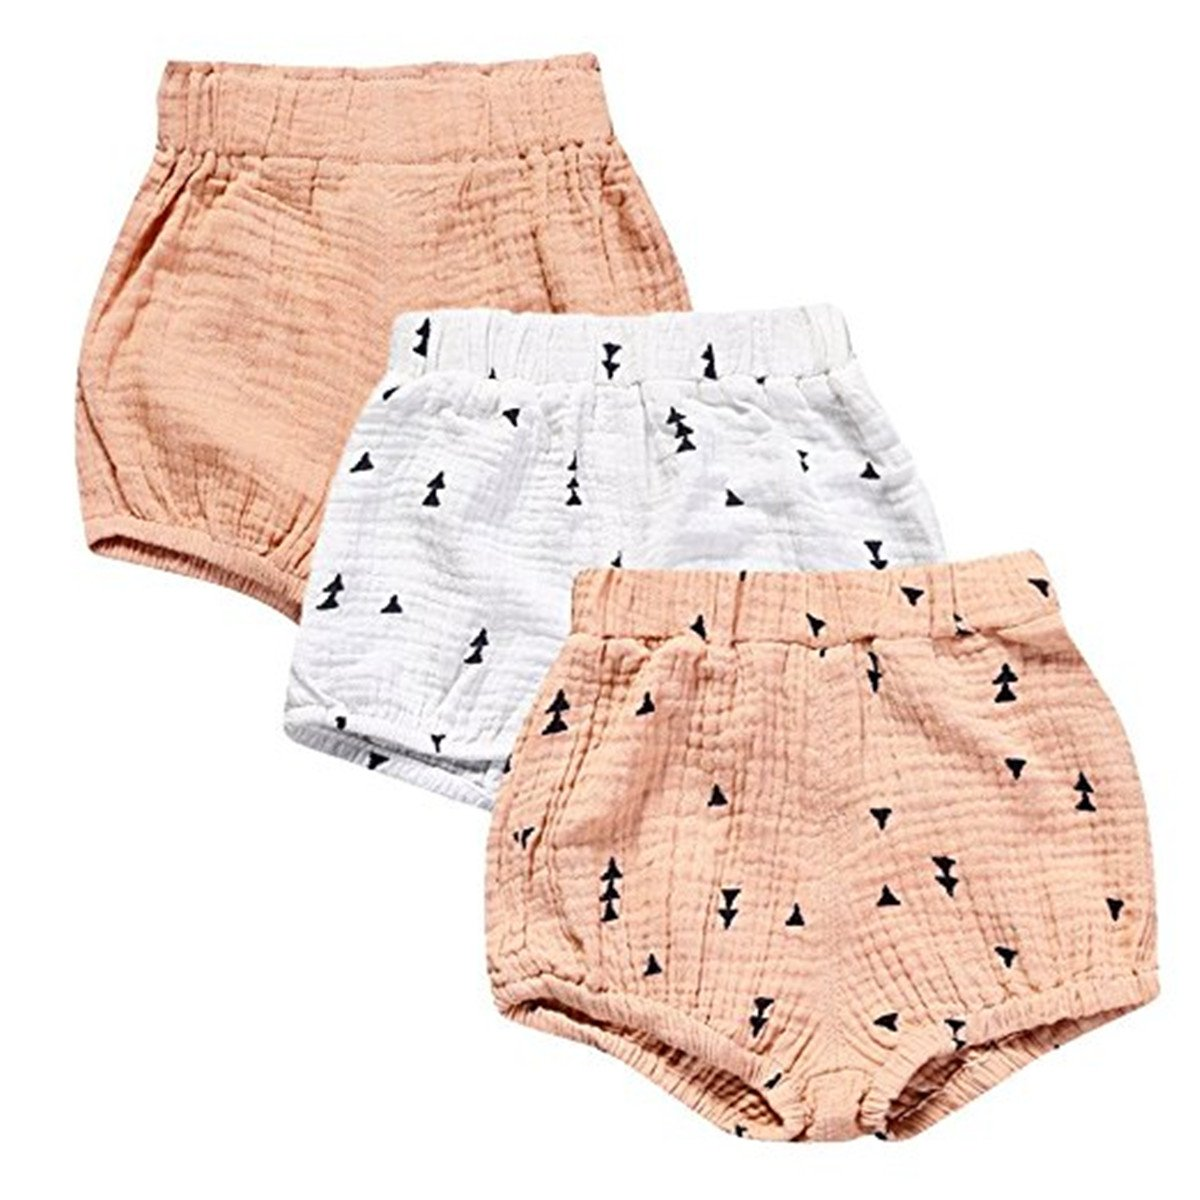 JELEUON 3 Pack of Little Baby Girls Boys Cotton Linen Blend Cute Bloomer Shorts